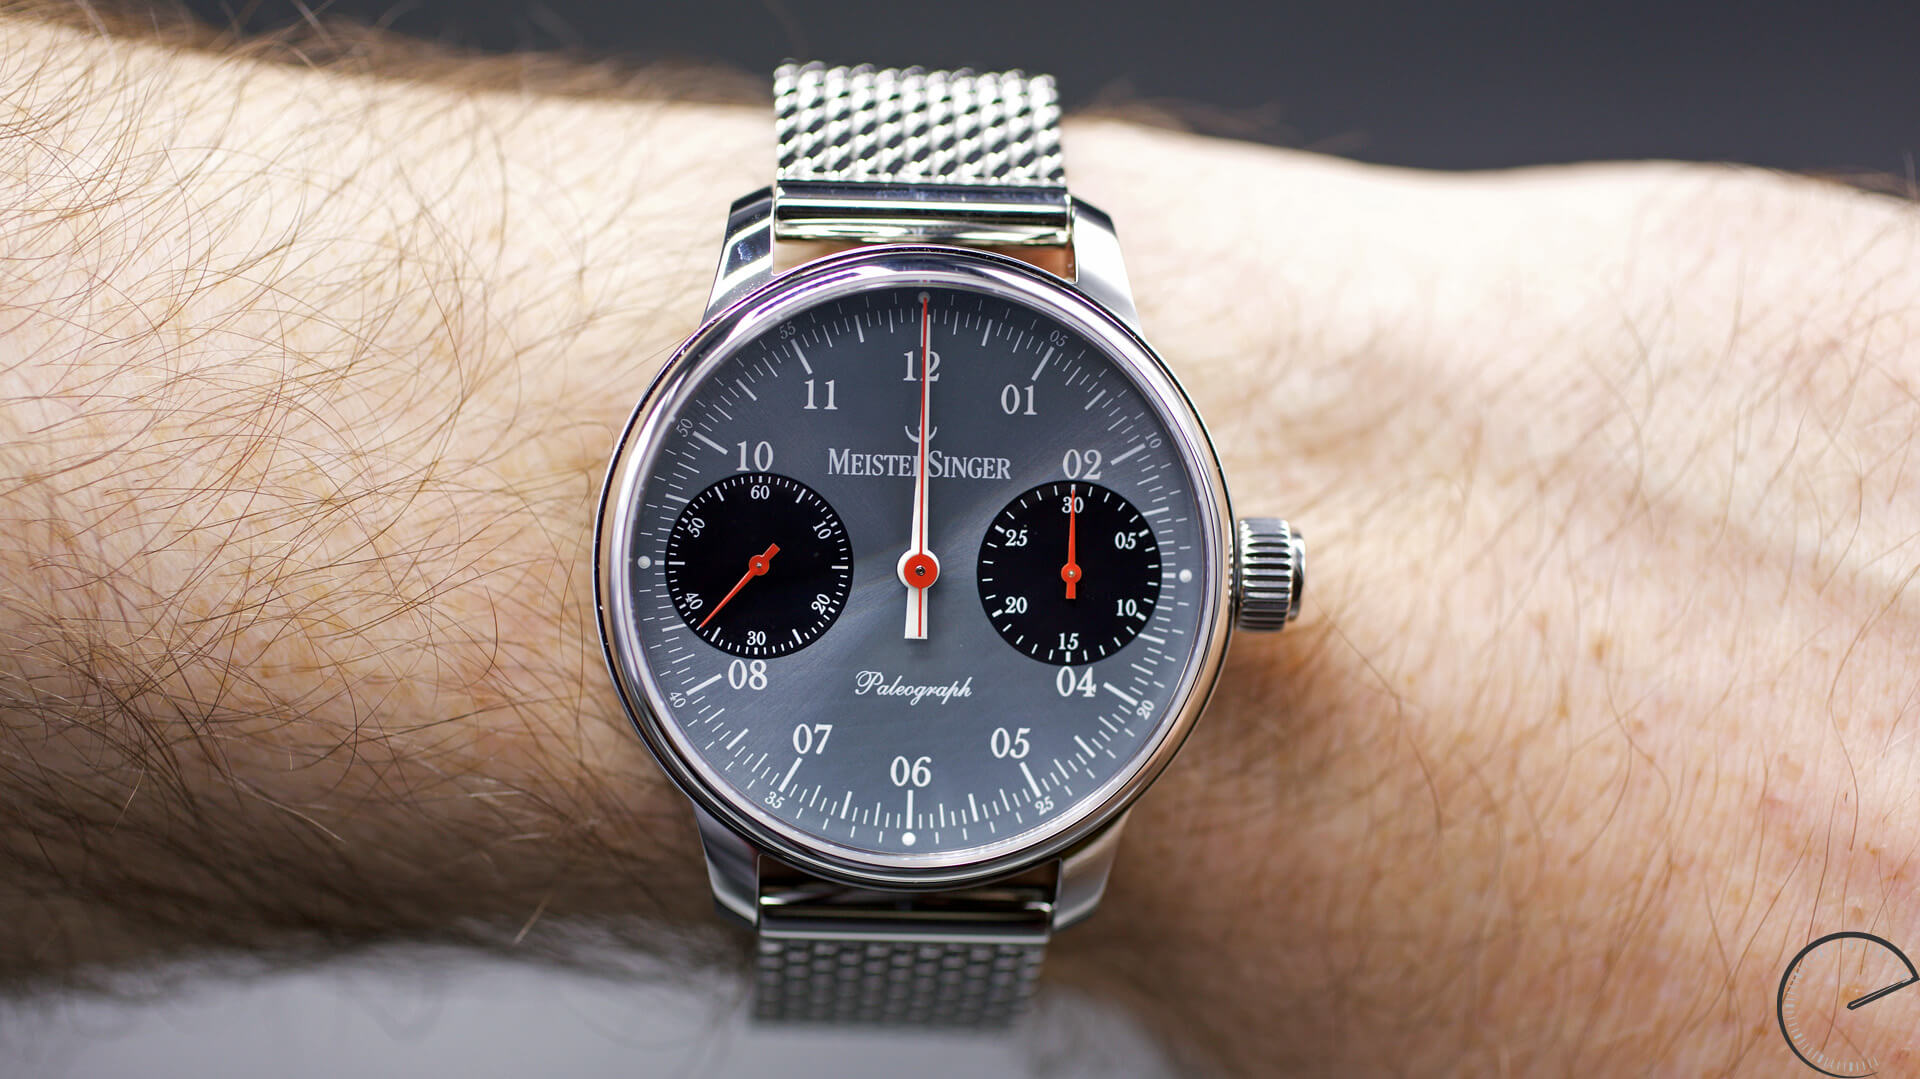 MeisterSinger Paleograph Single Push Column Wheel Chronograph